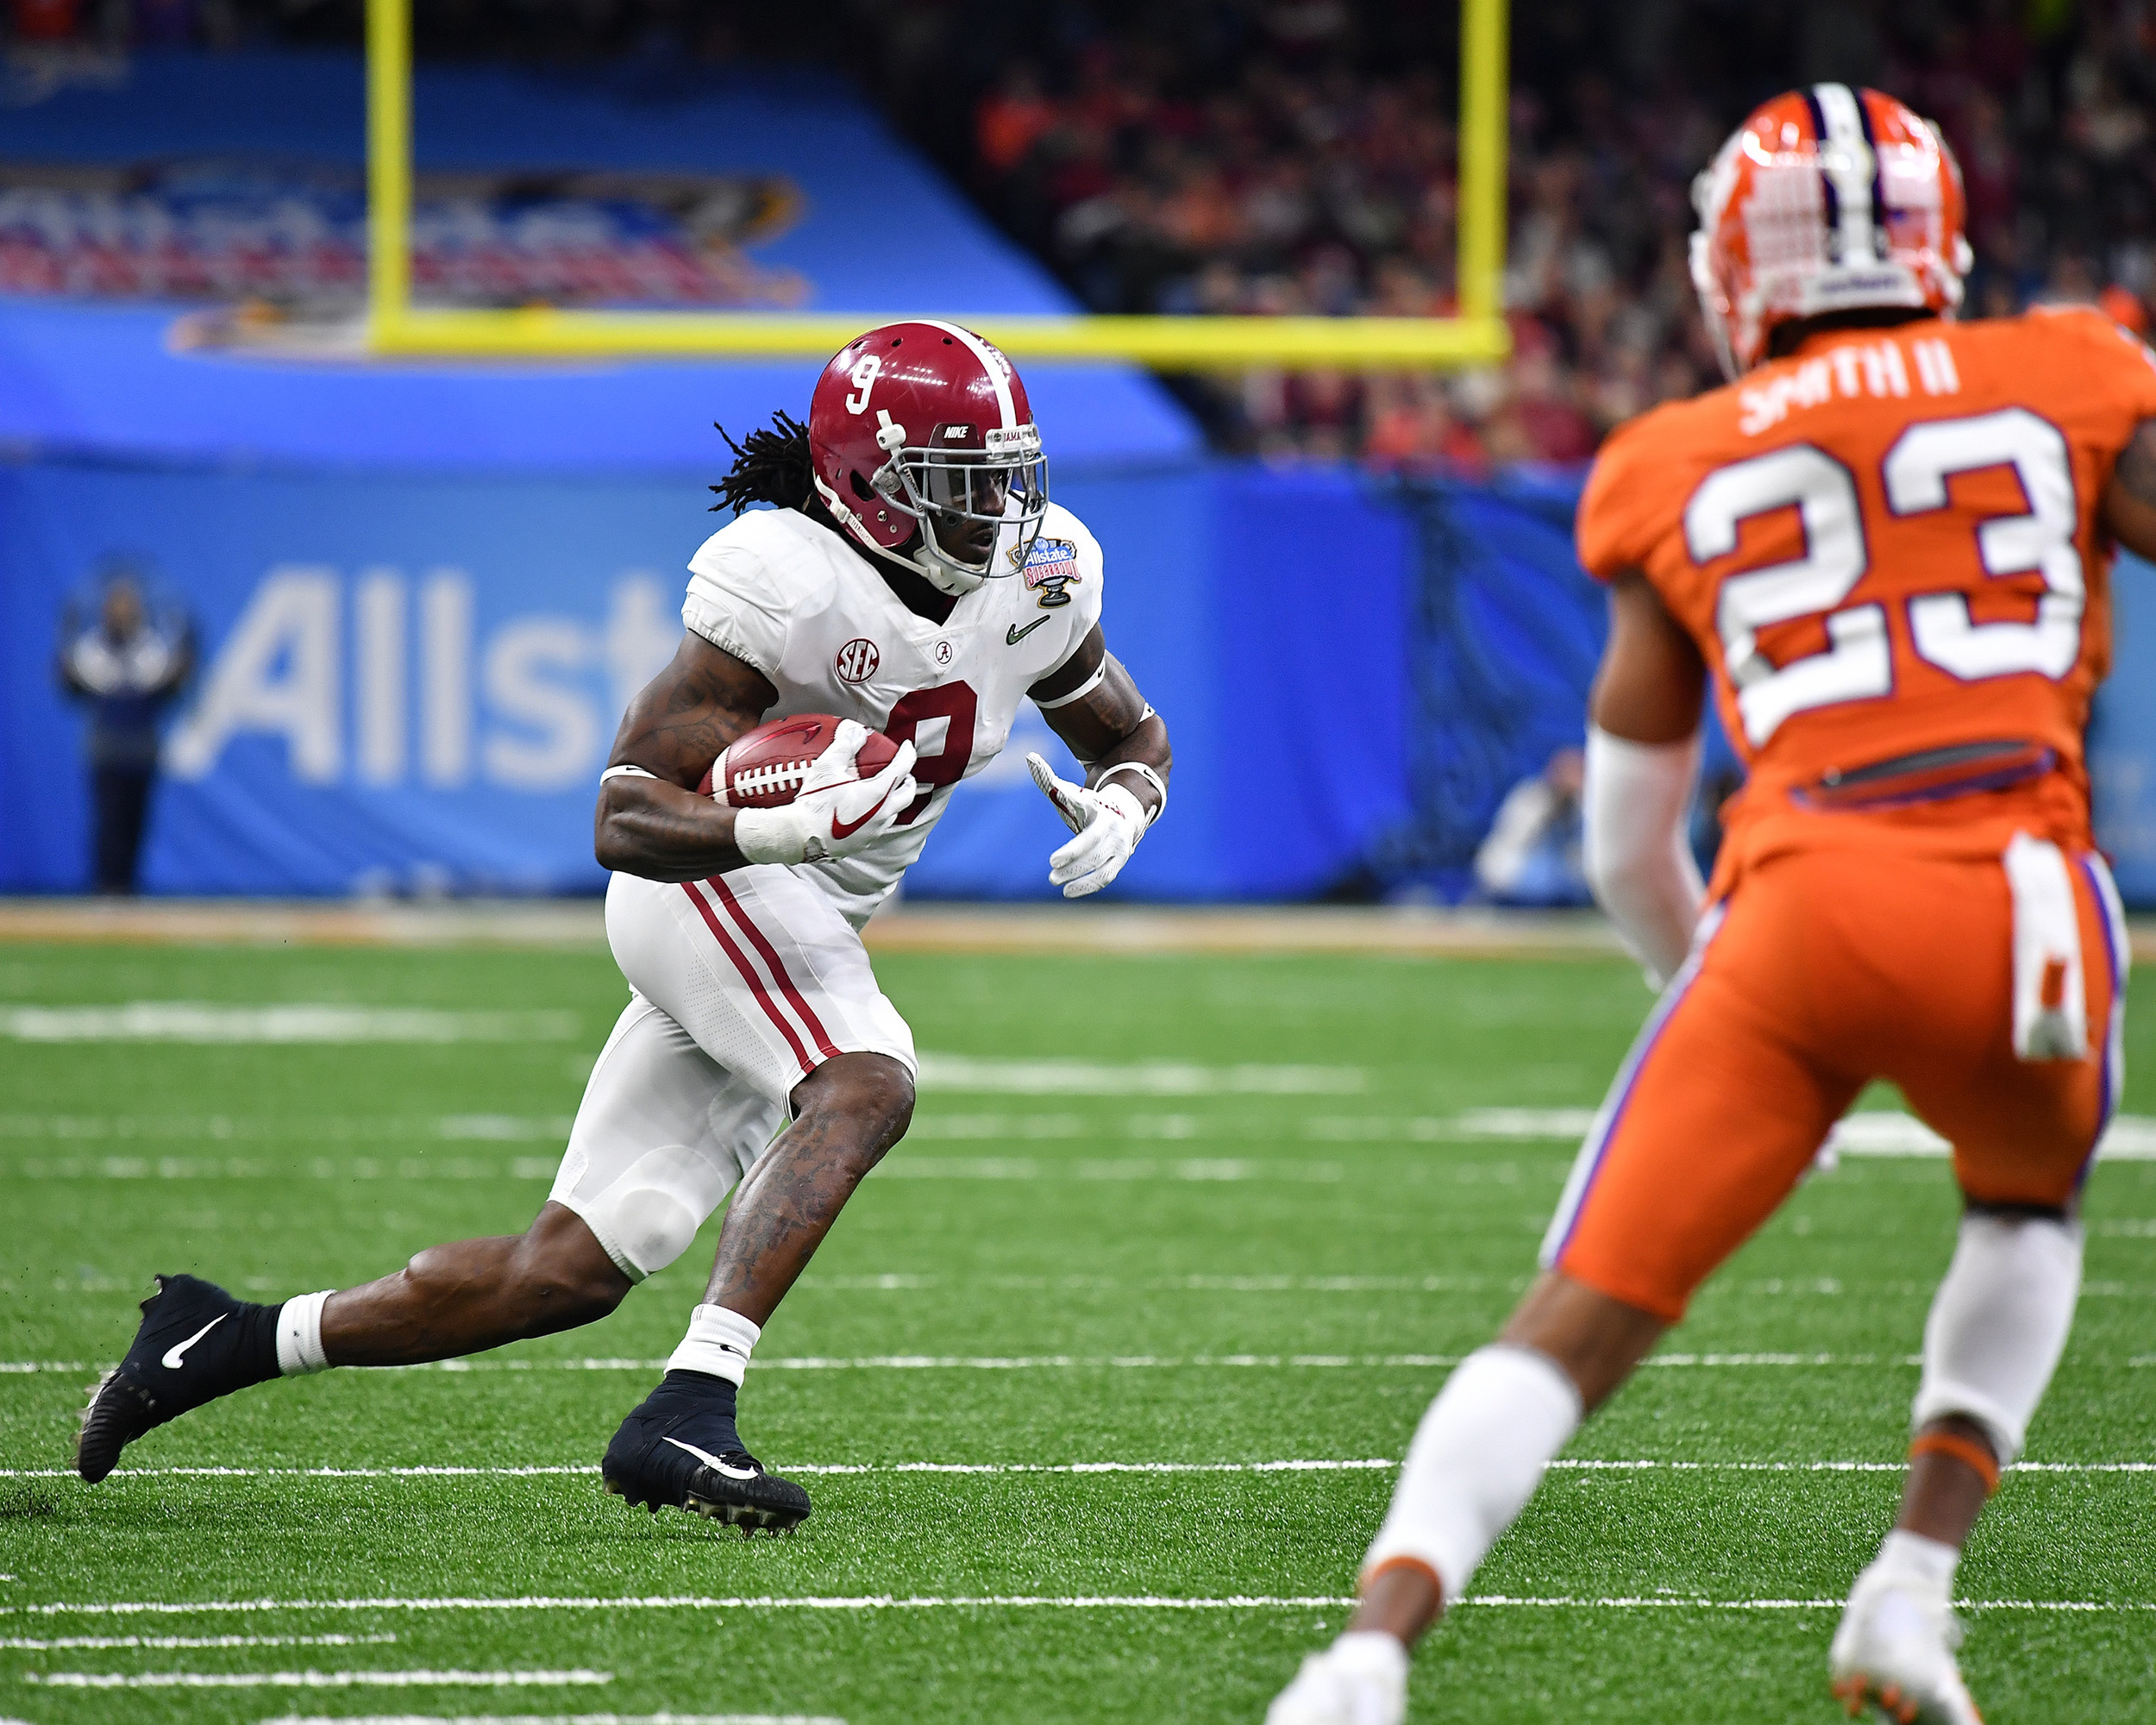 Alabama Crimson Tide running back Bo Scarbrough (9) with a carry in the first half of the 2018 AllState Sugar Bowl on Jan. 1, 2018, at the Mercedes-Benz SuperDome in New Orleans, La. Alabama won the game 24-6. (Photo by Lee Walls)